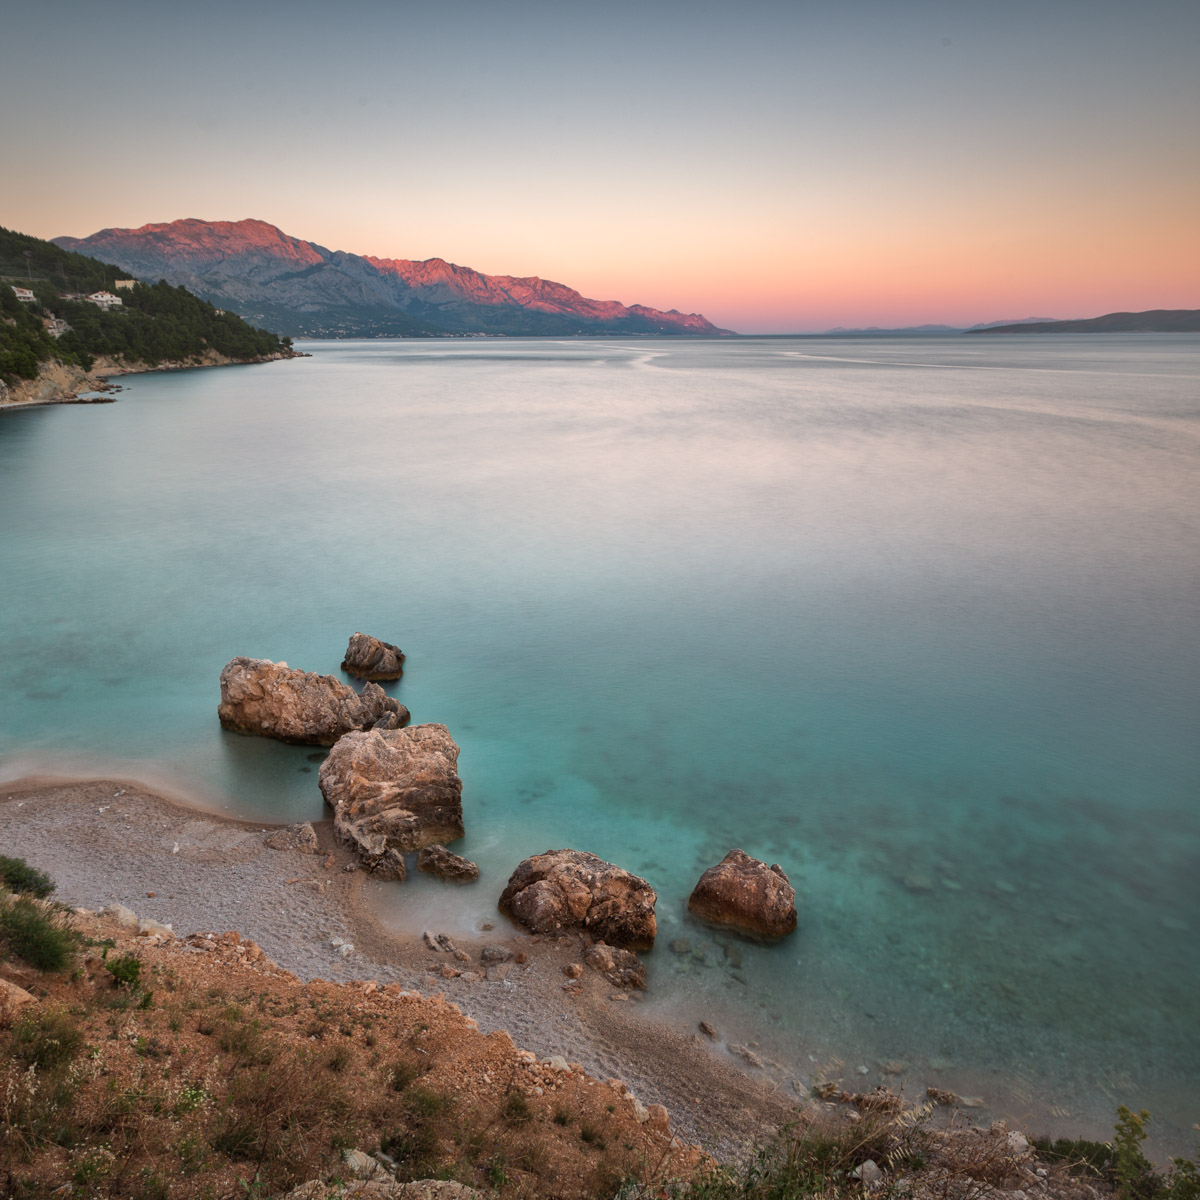 Rocky Beach, Sunset, Mimice Village, Croatia